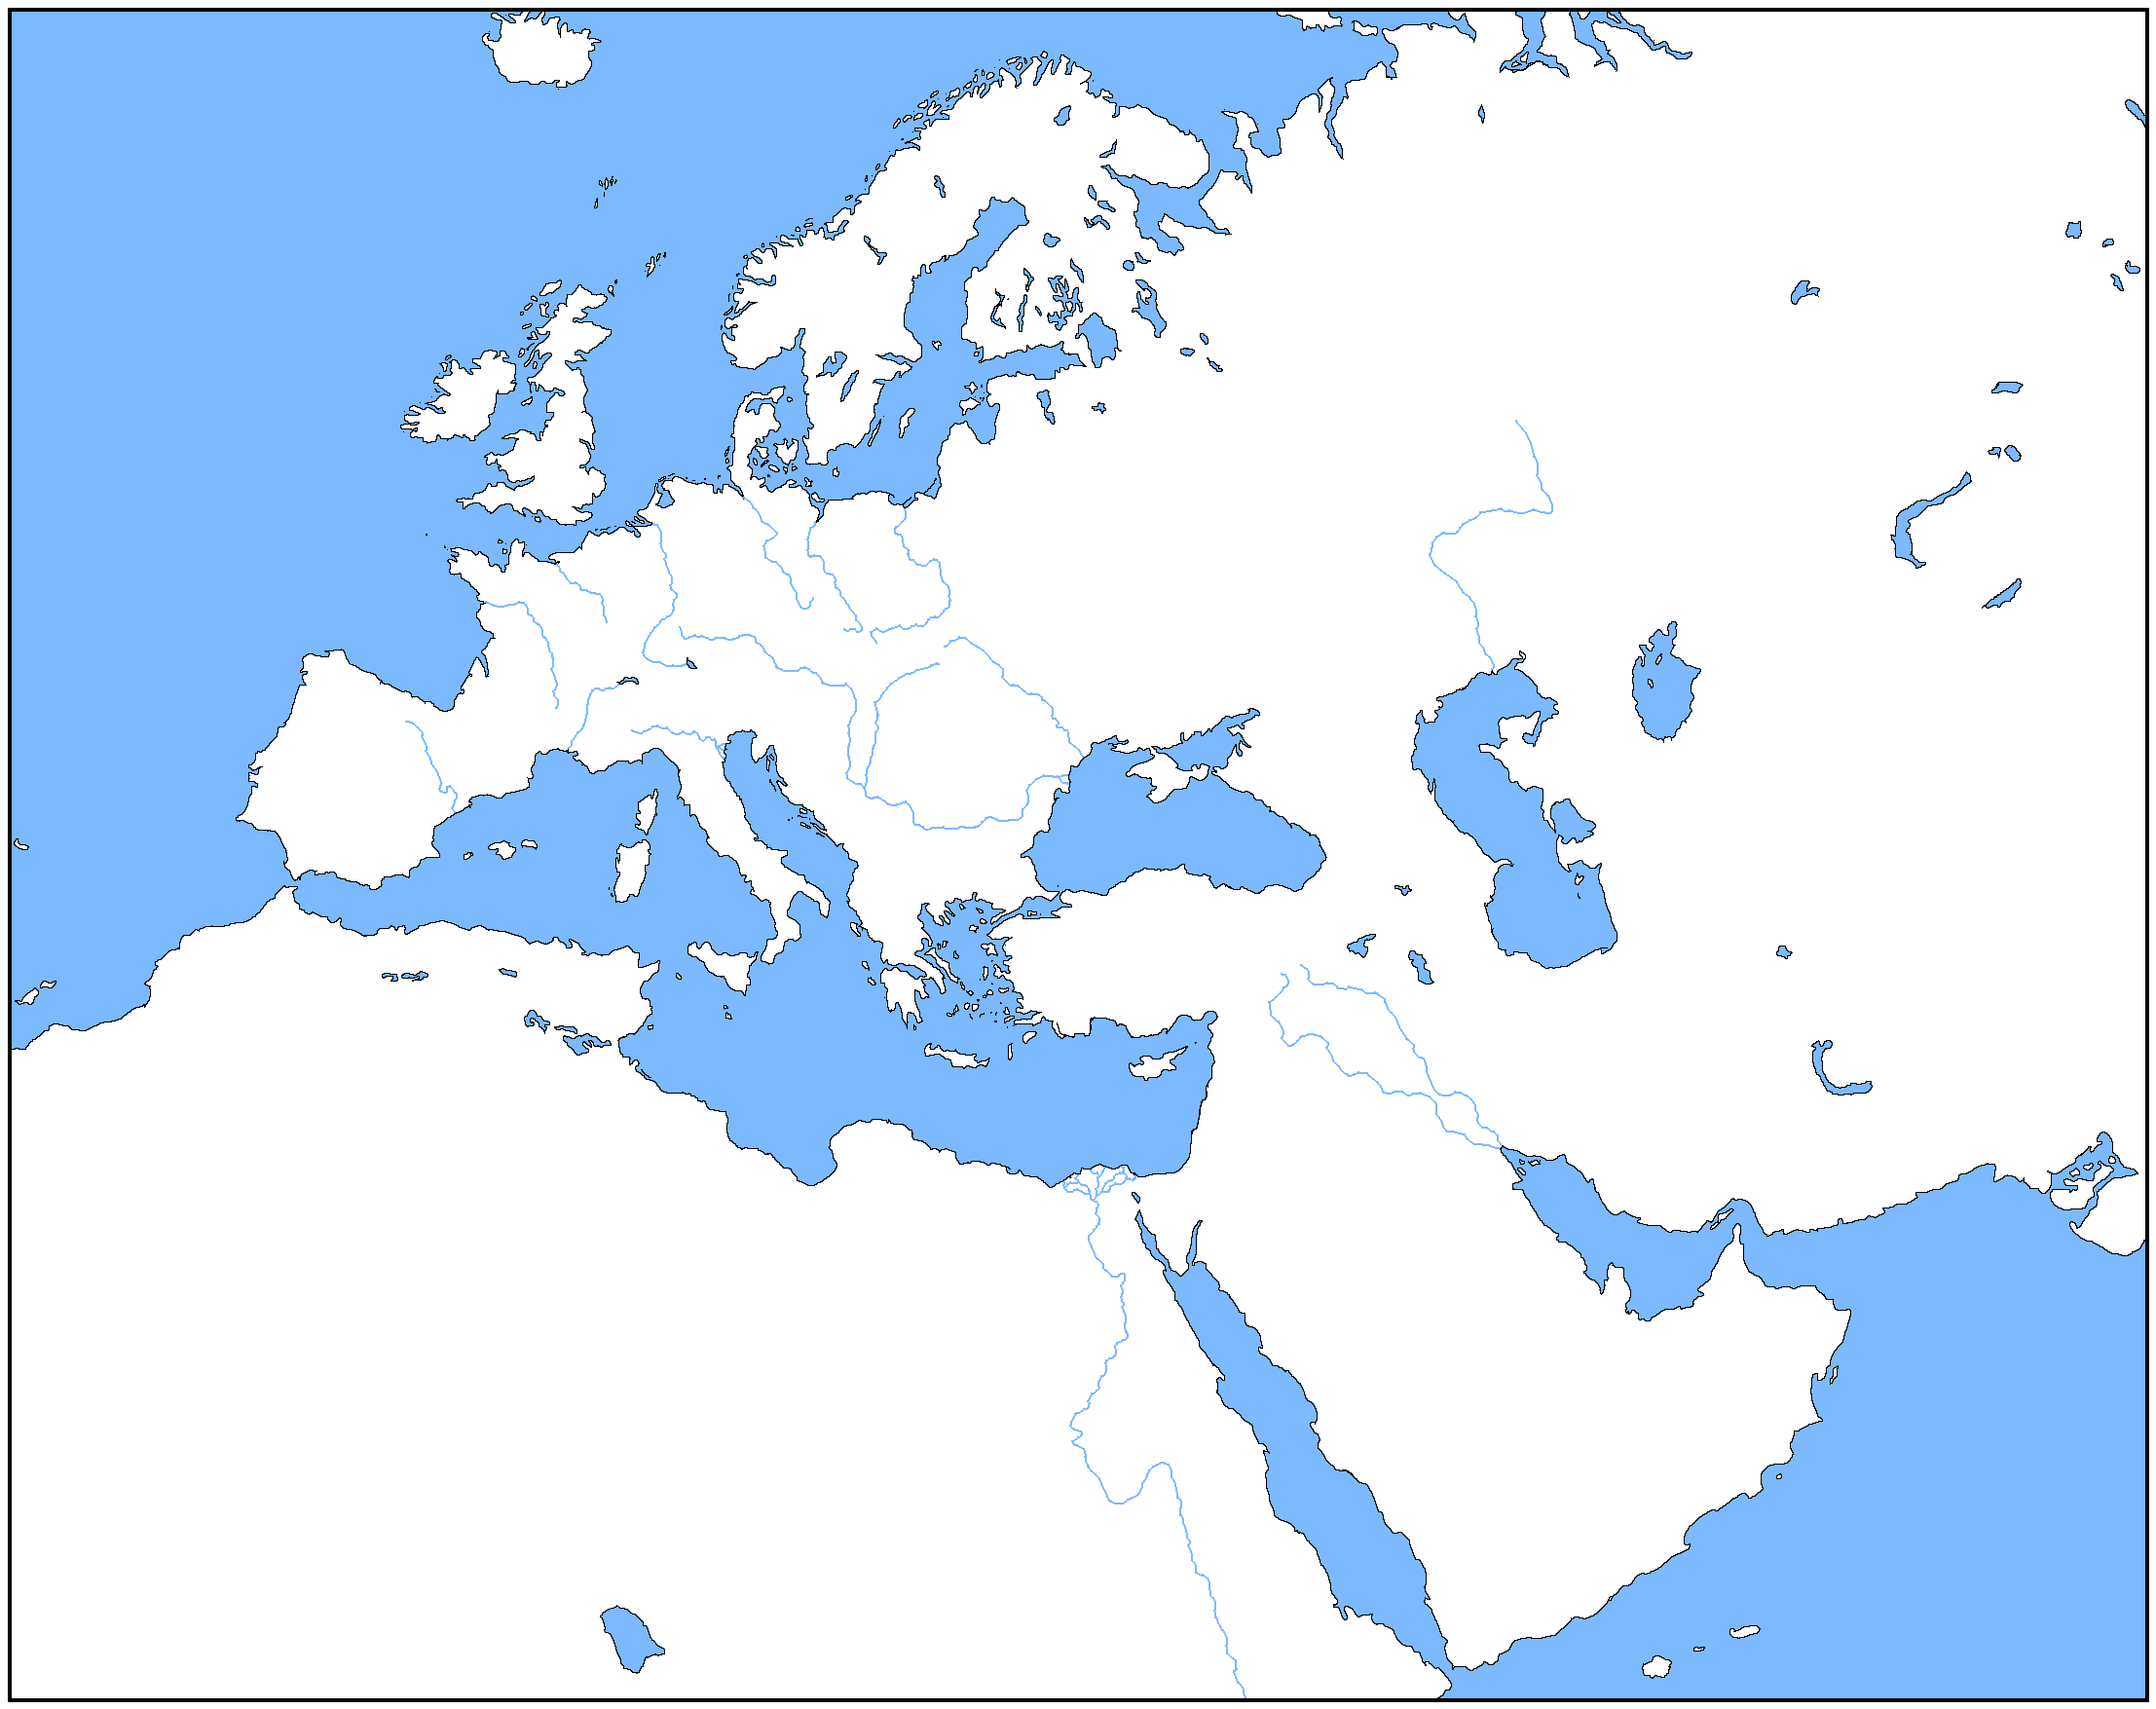 blank_map_directory:all_of_europe_3 [alternatehistory.com wiki]